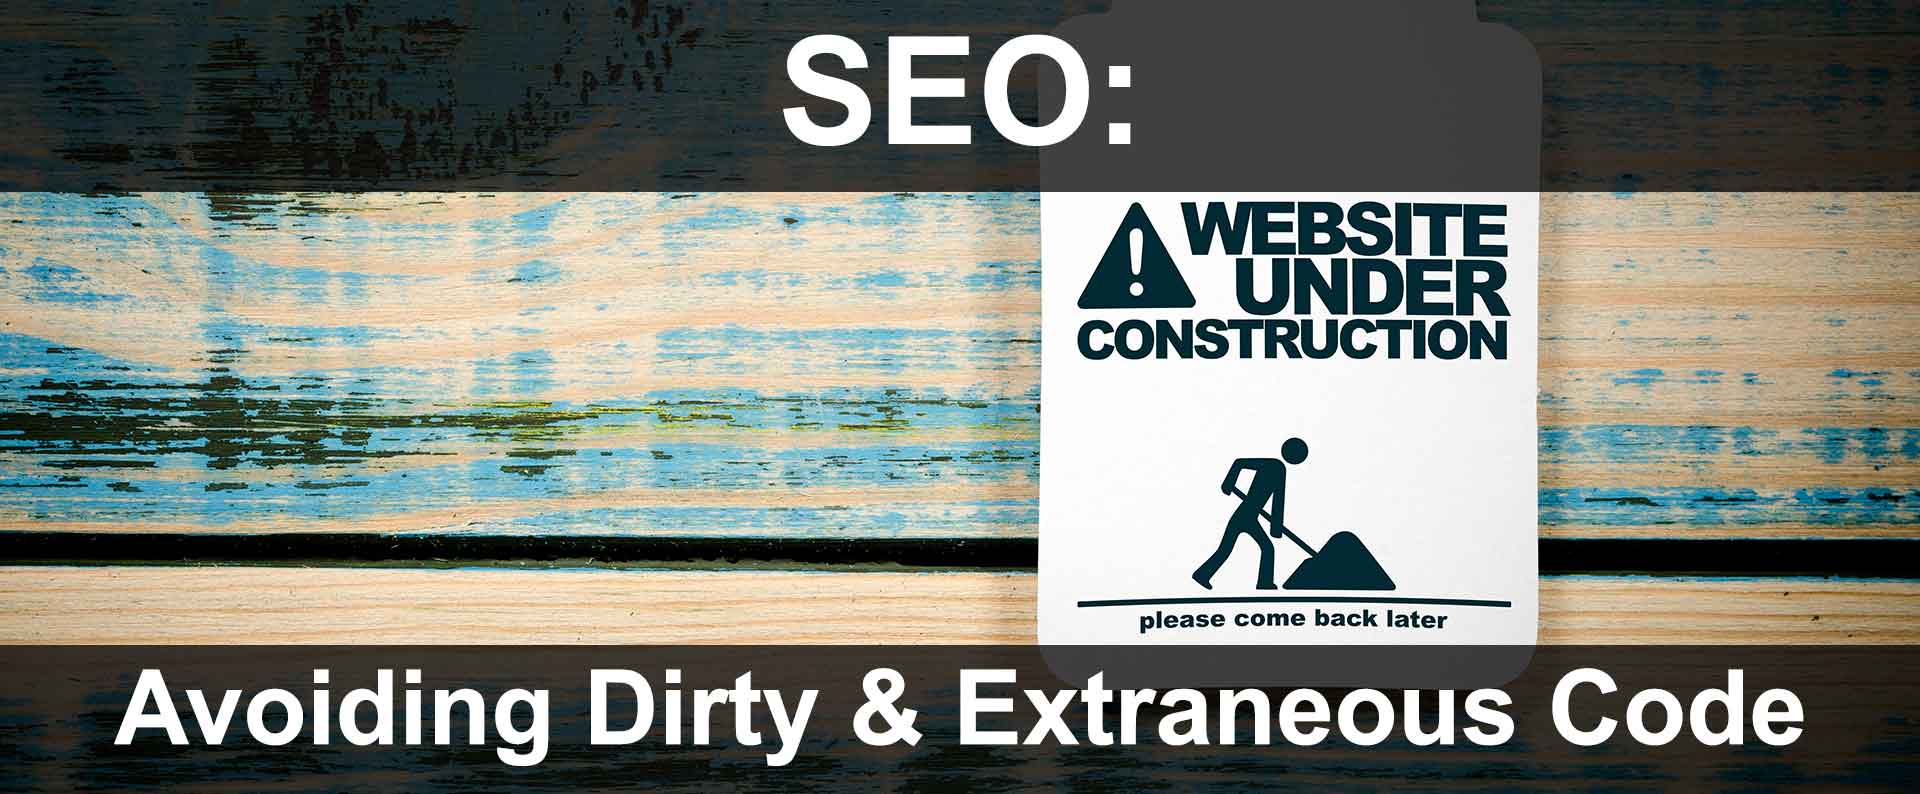 Dirty Code by DIY Website Generators Can Hurt SEO